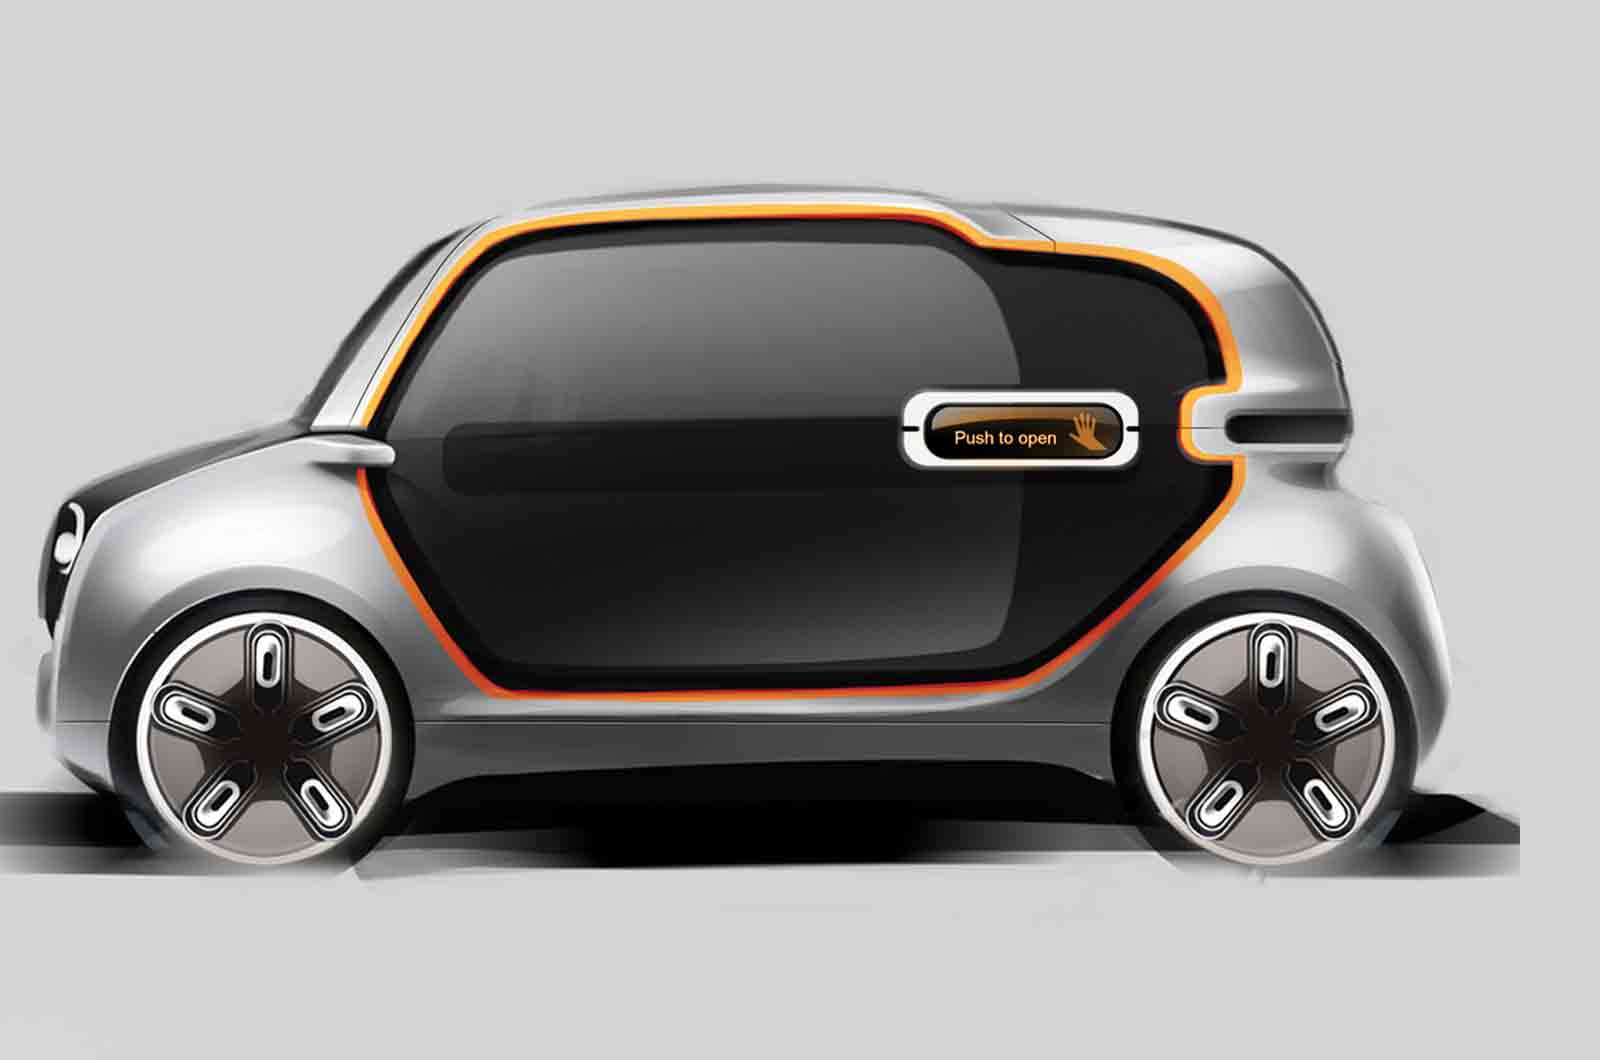 Motorparks Fiat New Fiatfuture And Concept Cars Fiat